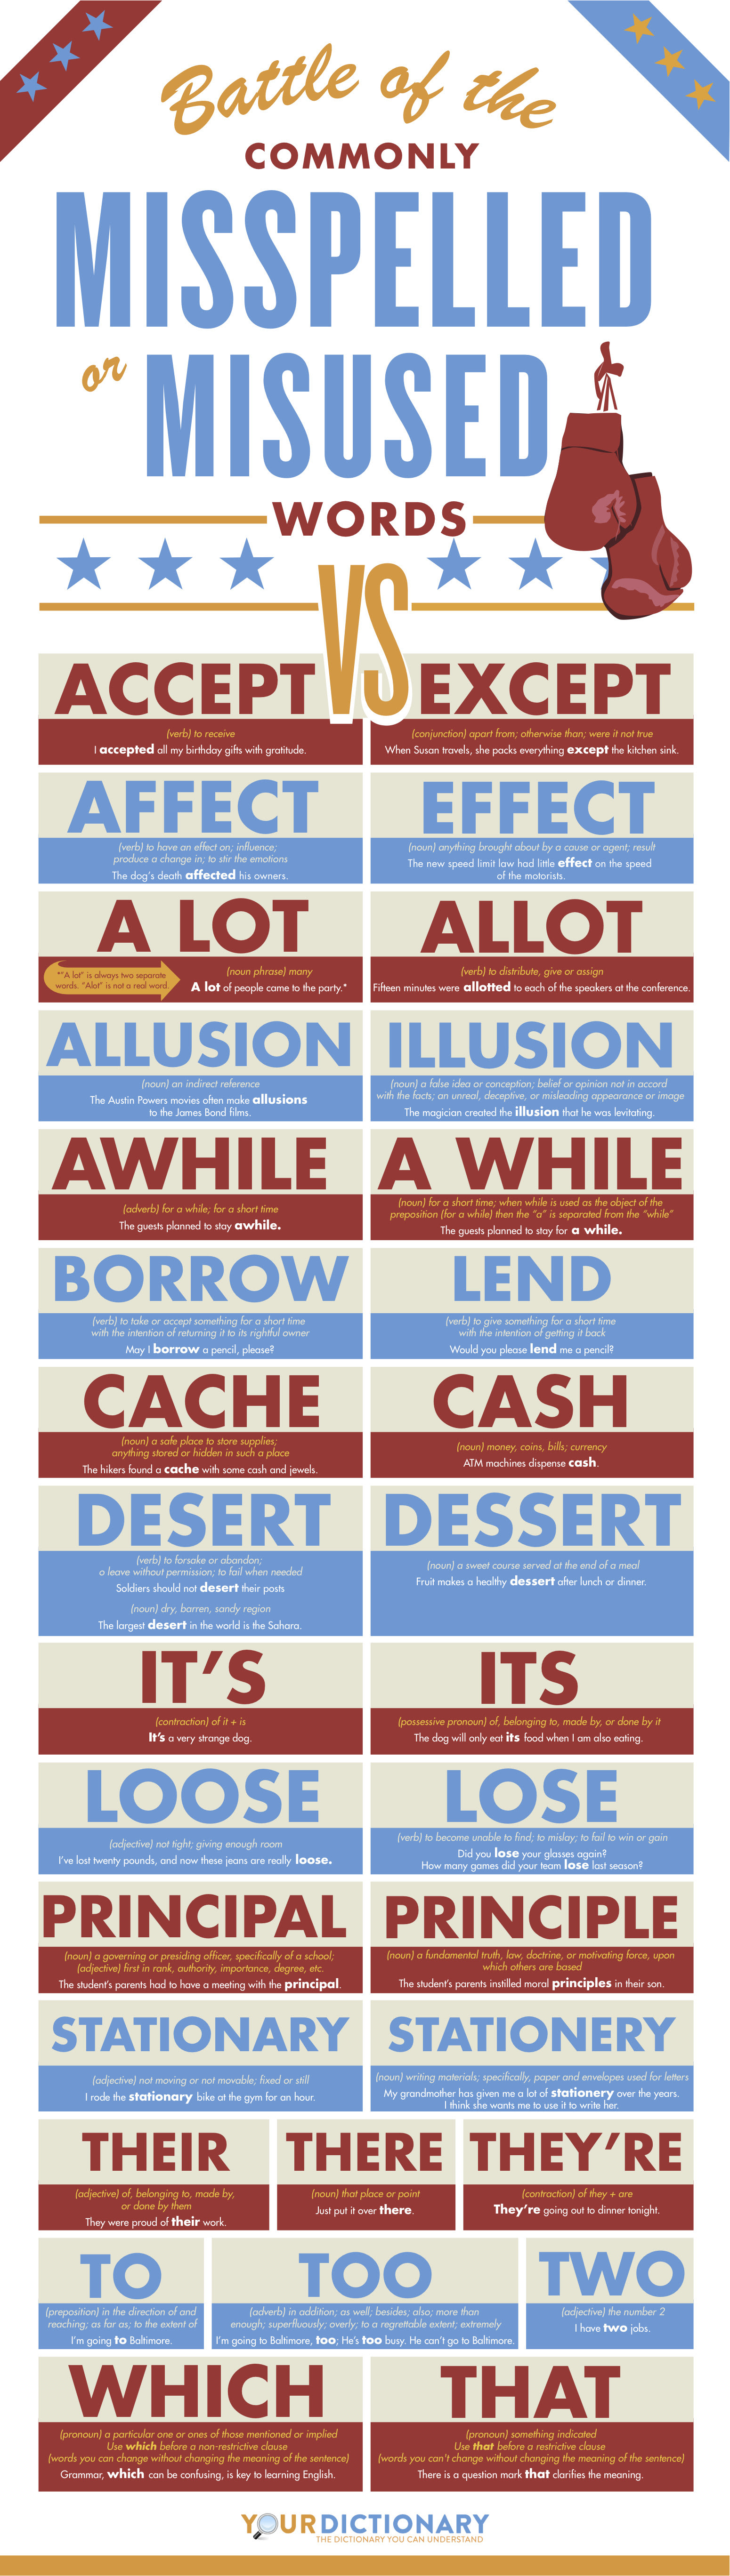 infographic: Battle of the Commonly Misspelled or Misused Words